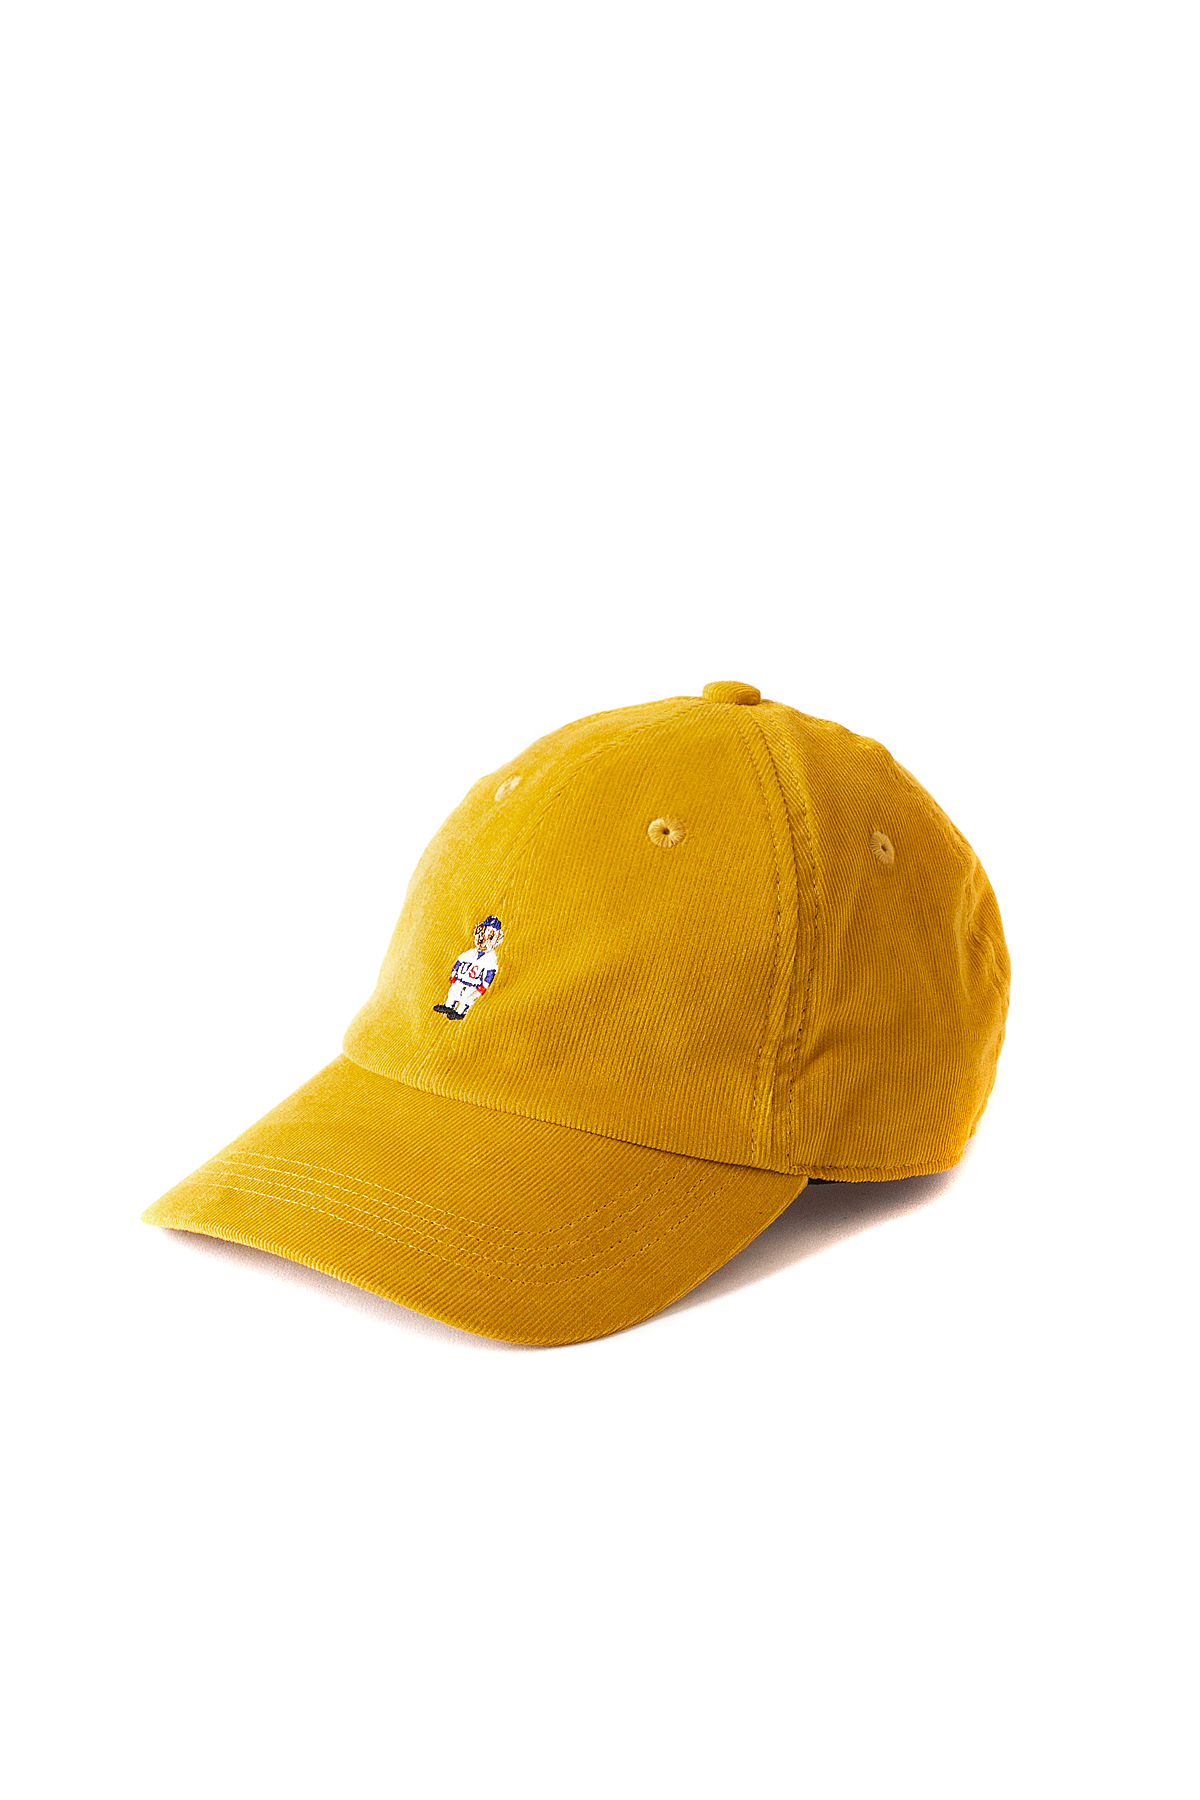 Infielder Design : Bear Cap (Yellow)